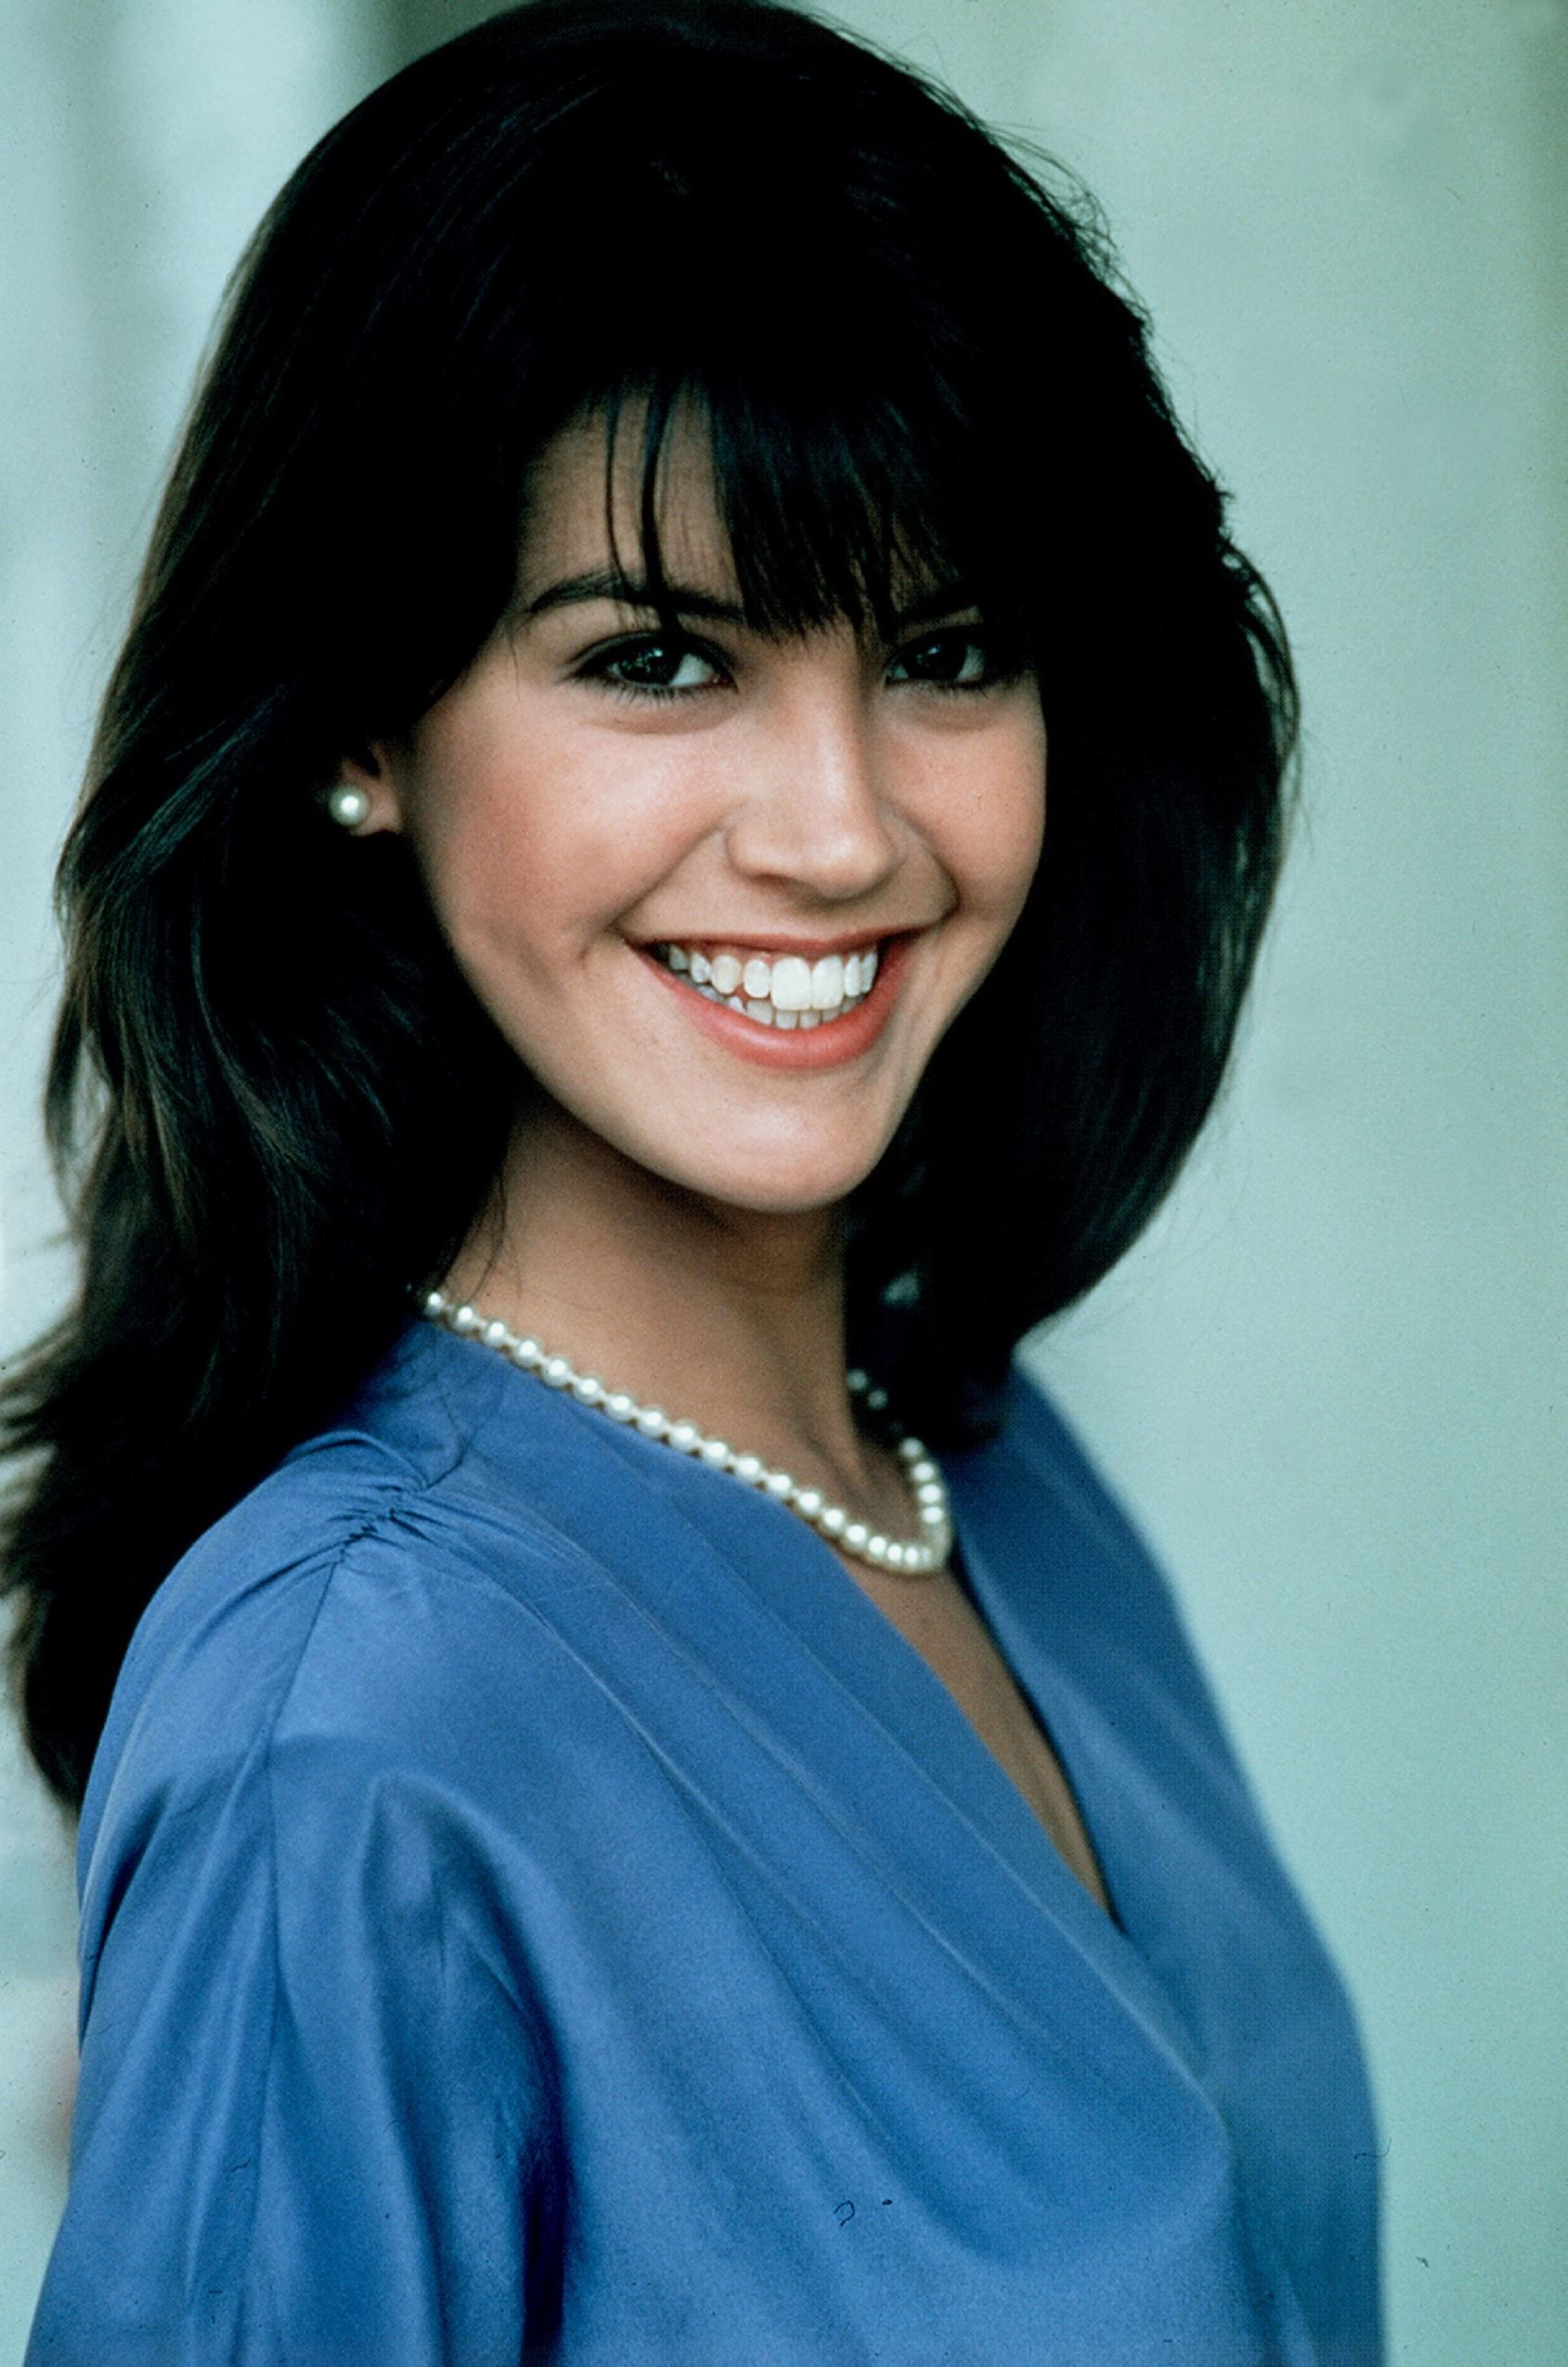 Smiling picture of Phoebe Cates in blue dress